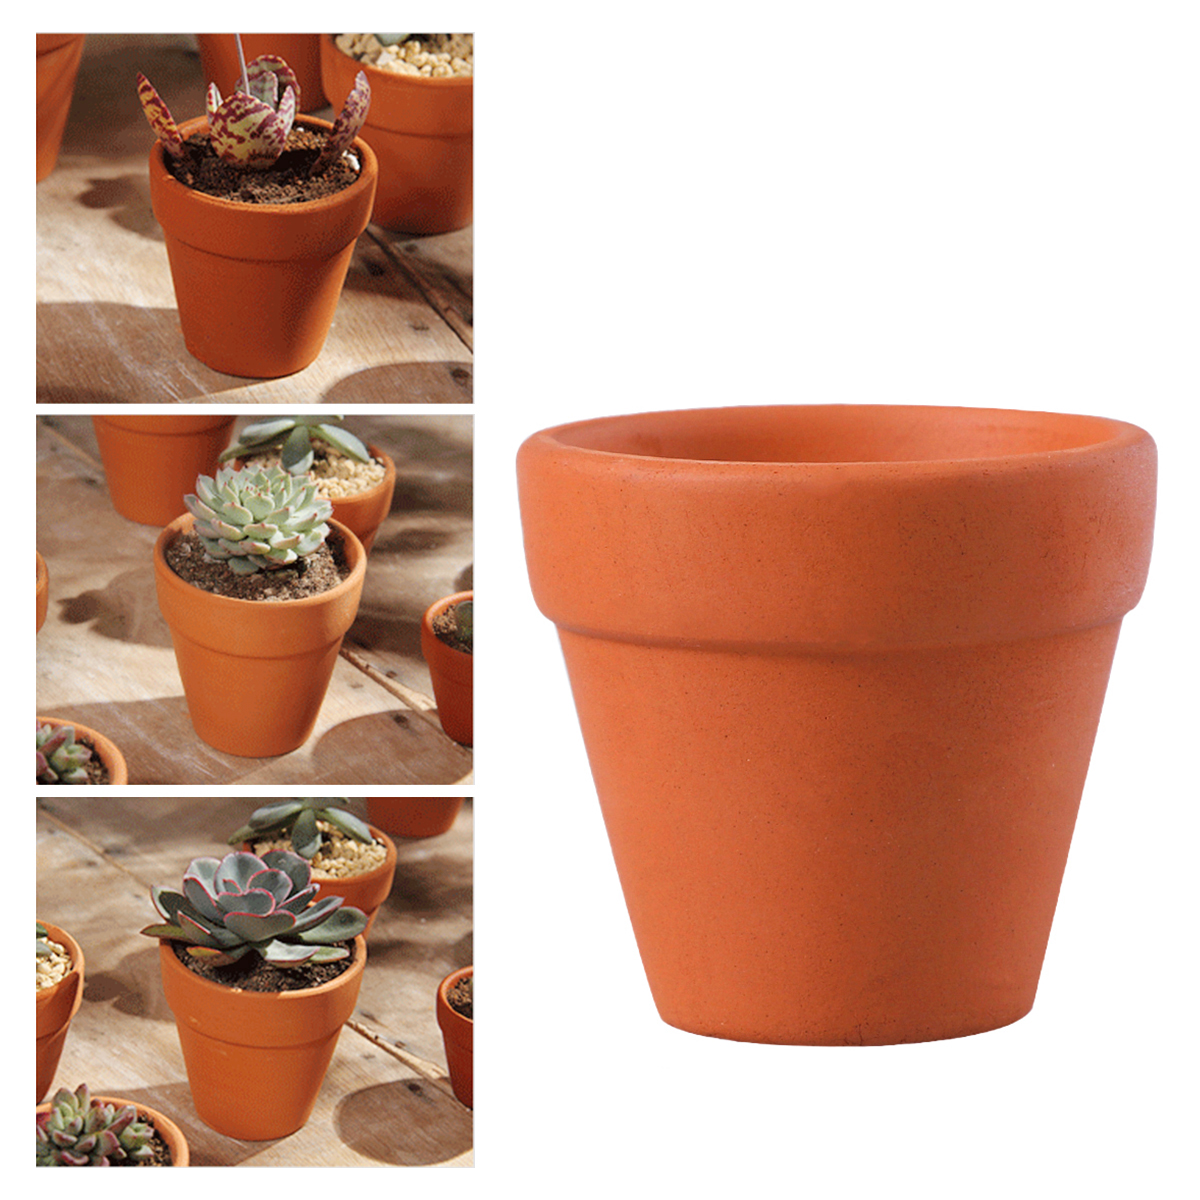 Buy Terracotta Pots And Get Free Shipping On Aliexpress